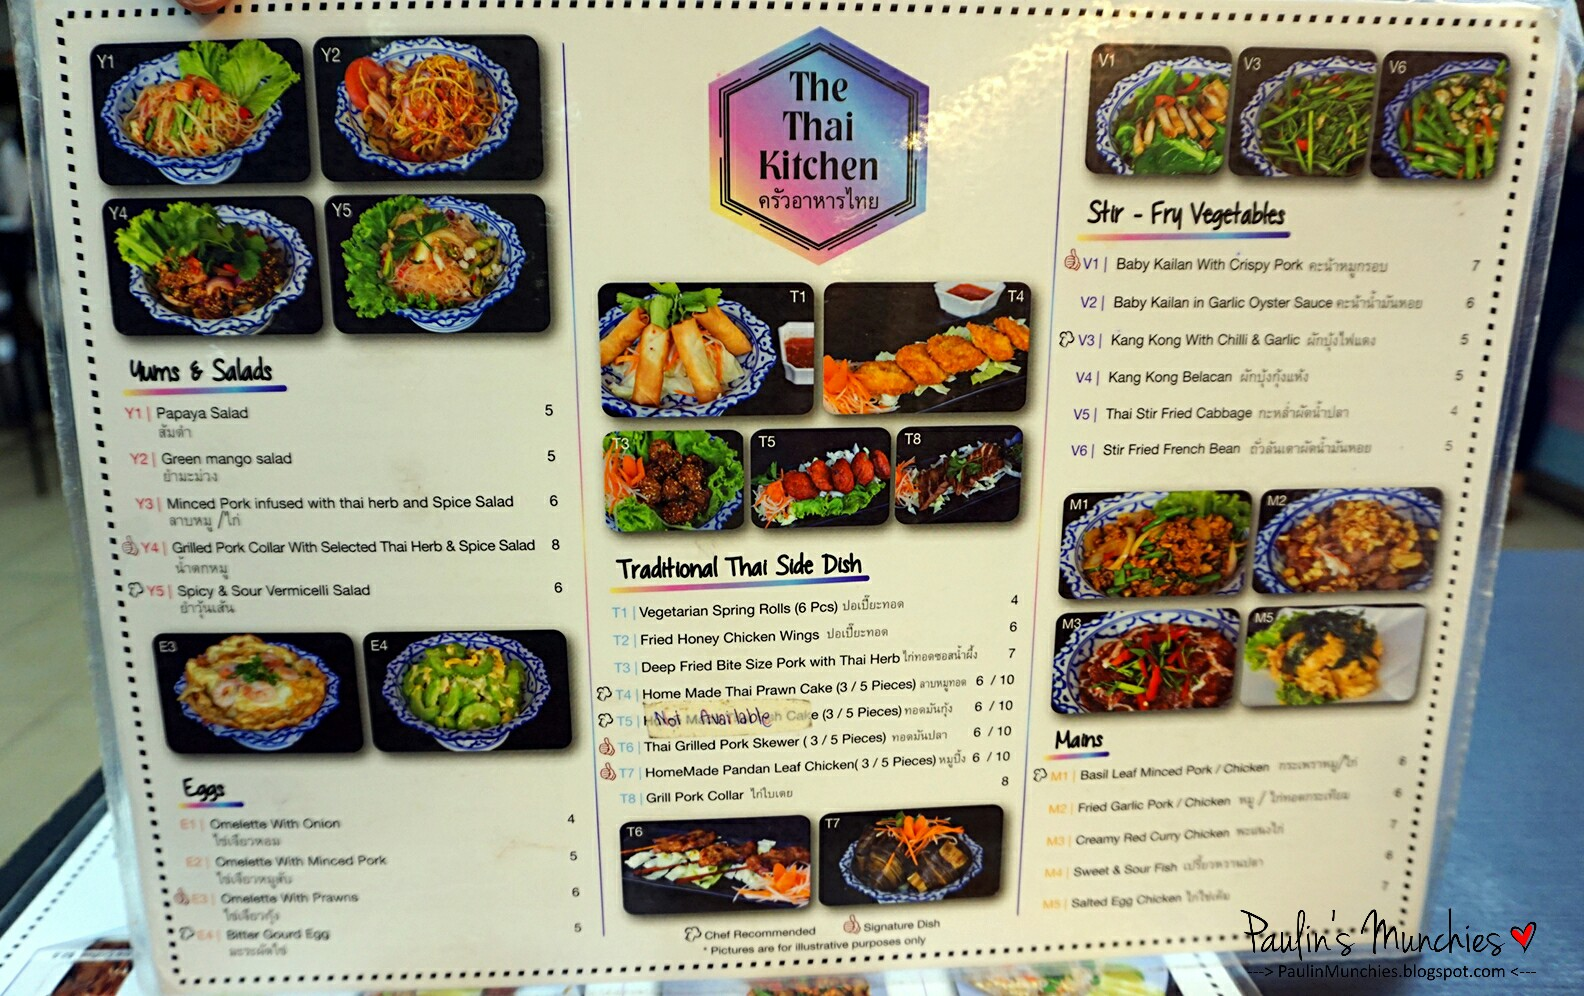 The Talad Drink And Thai Kitchen Menu